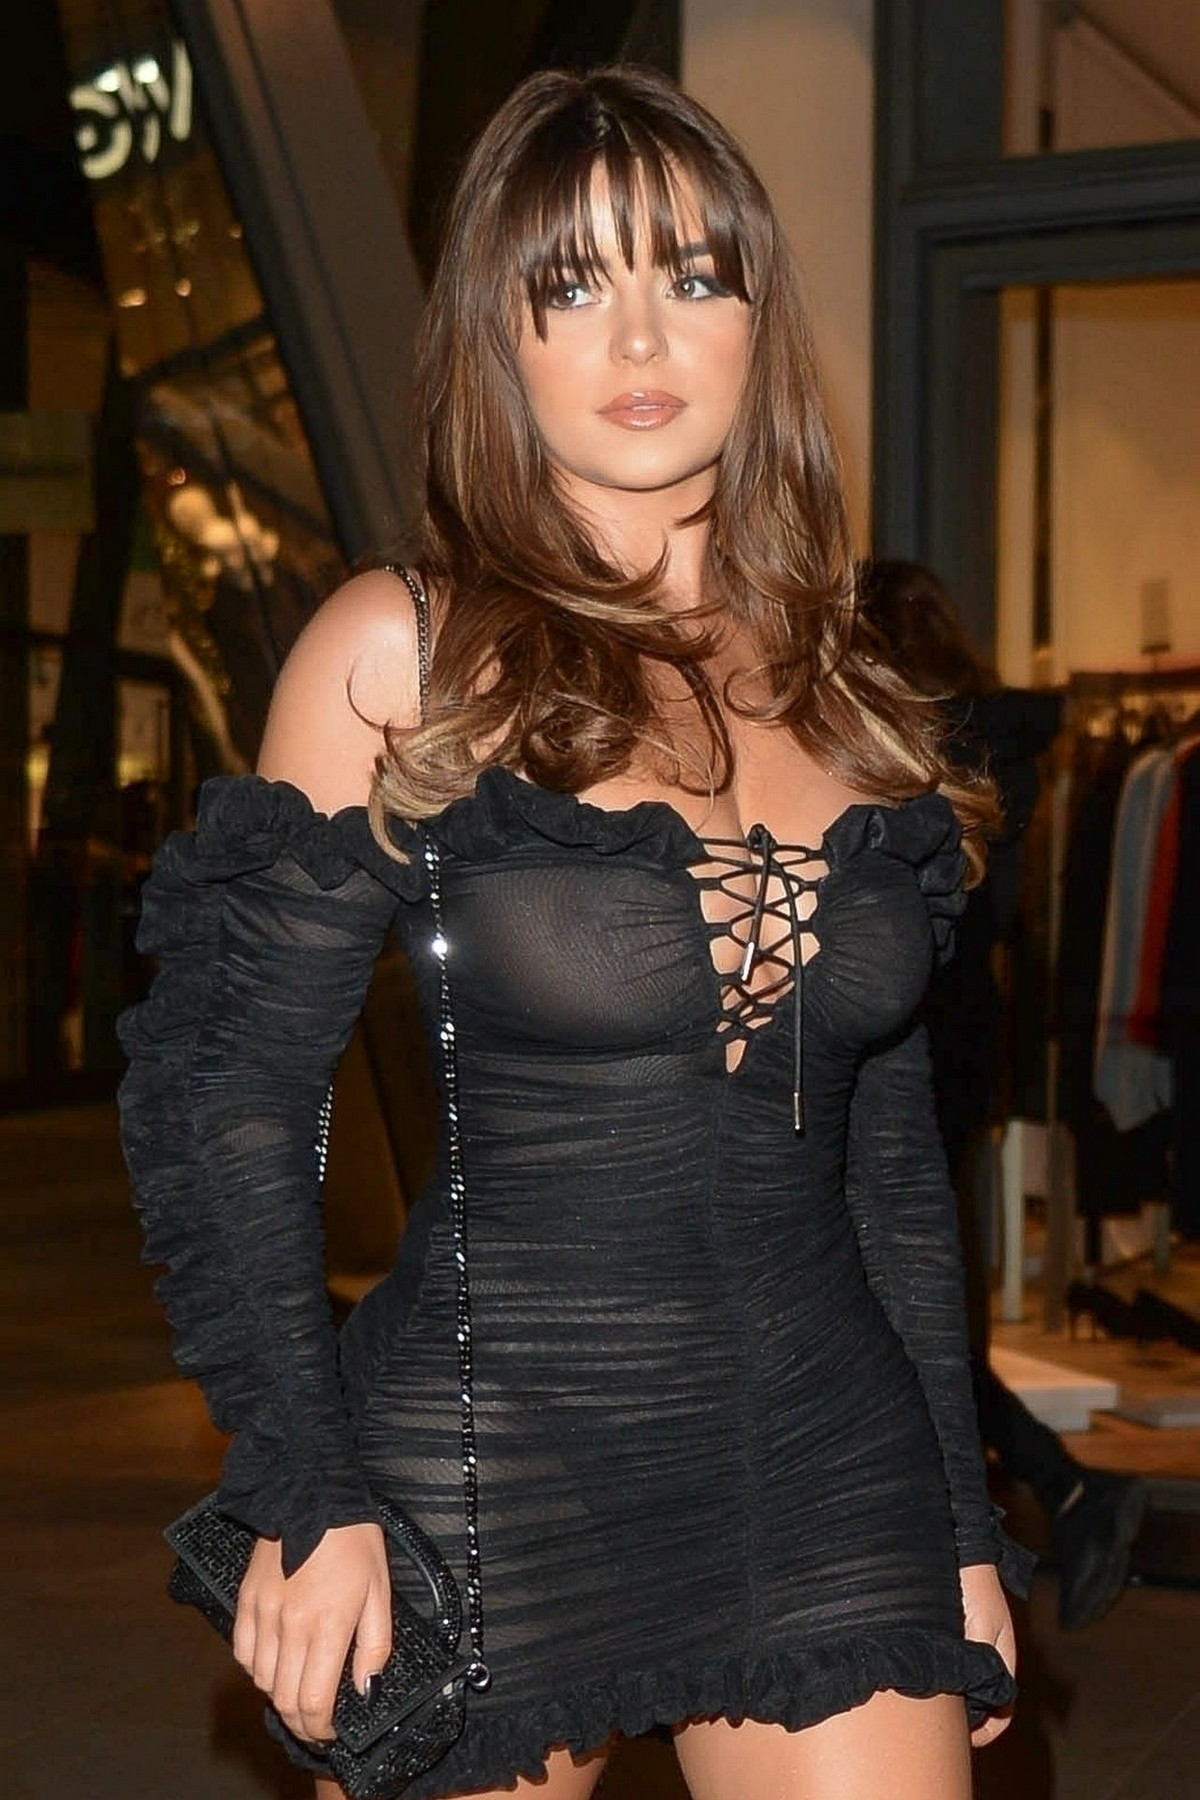 Demi Rose Mawby seen in Stylish Short Dress at The Skinny Tan Choc Range launch party in Madison, London 2019/11/19 18